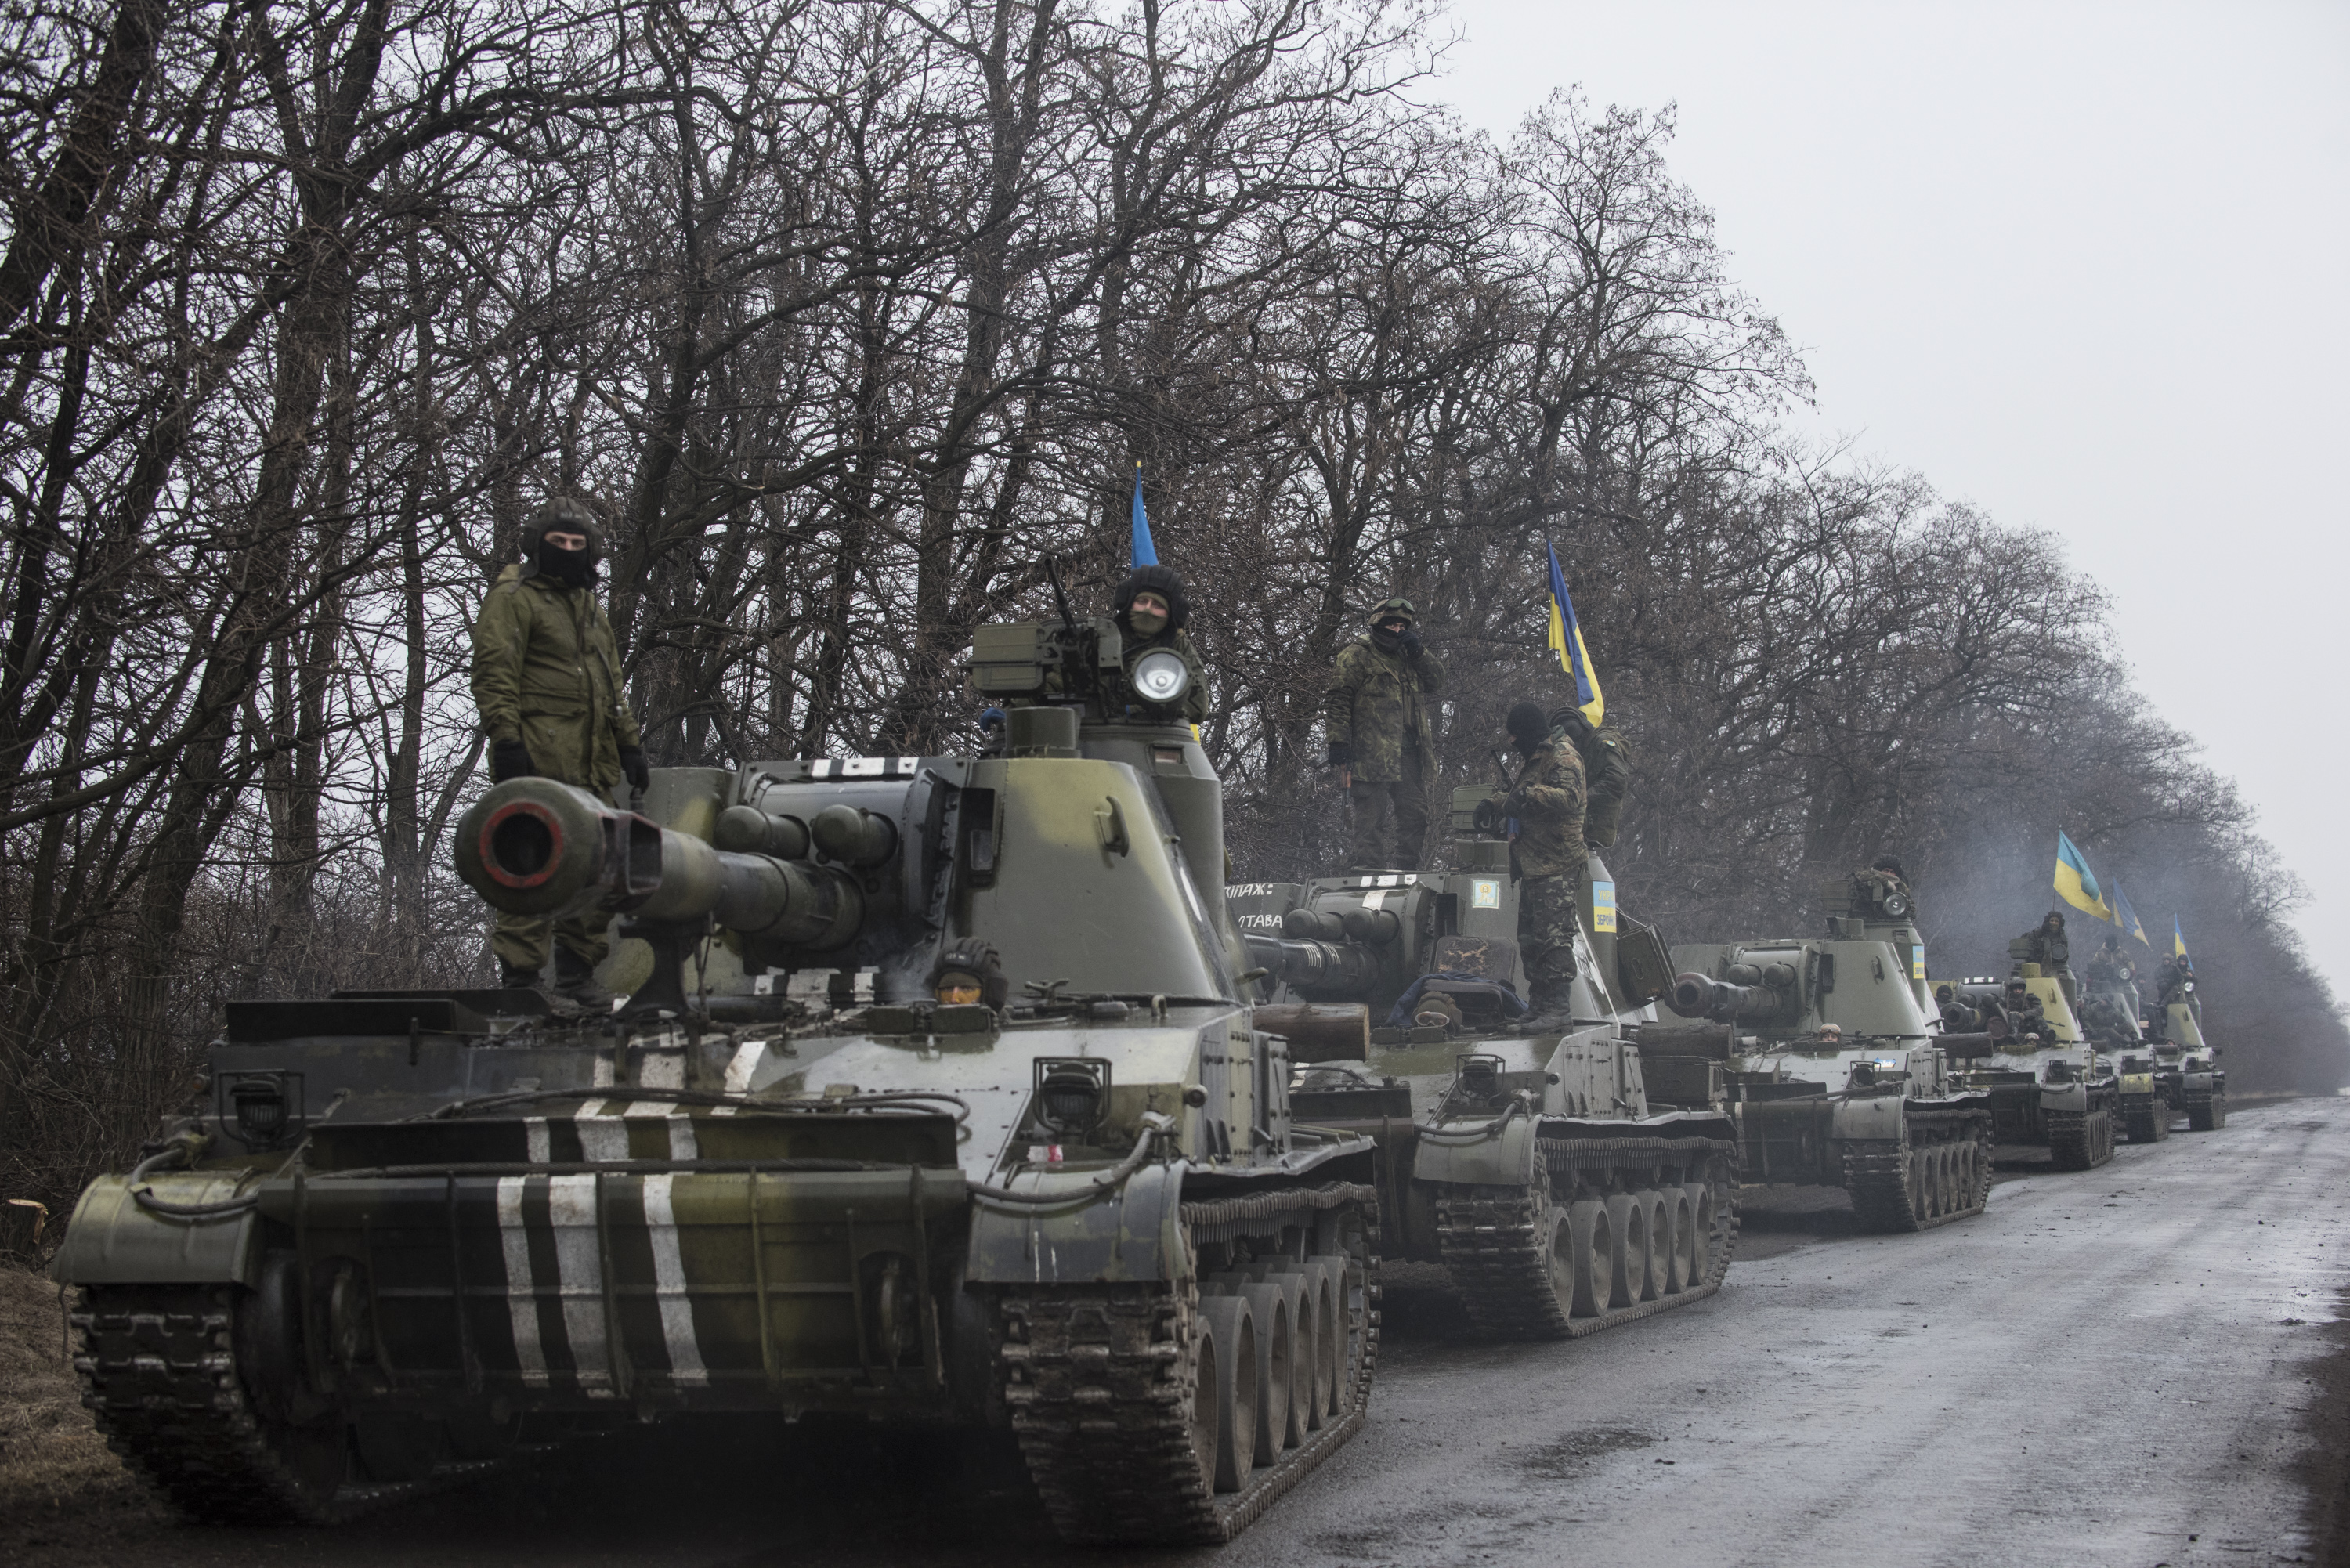 Russian Tanks in Ukraine